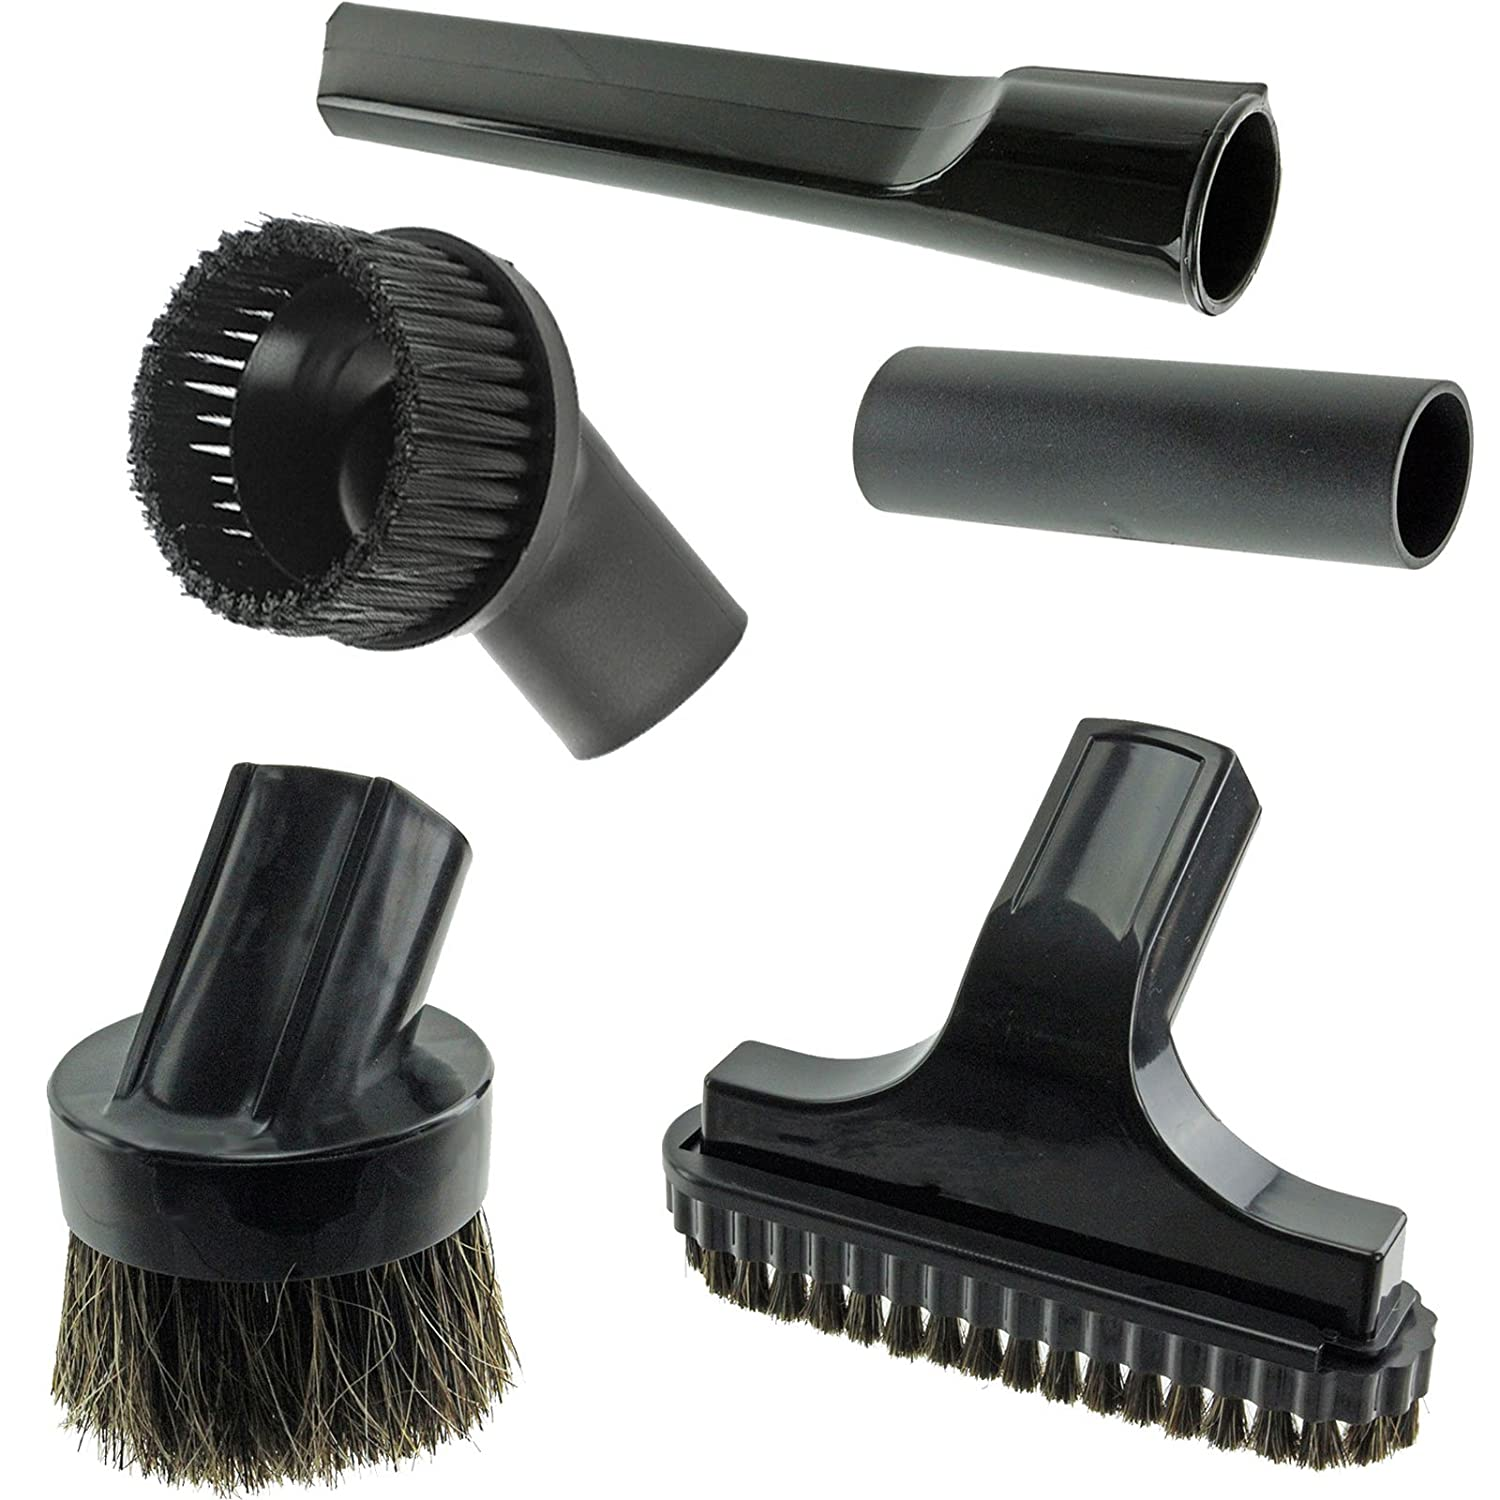 Stair Crevice Dusting Brush Fits VAX Vacuum Cleaner 32mm MINI TOOL KIT